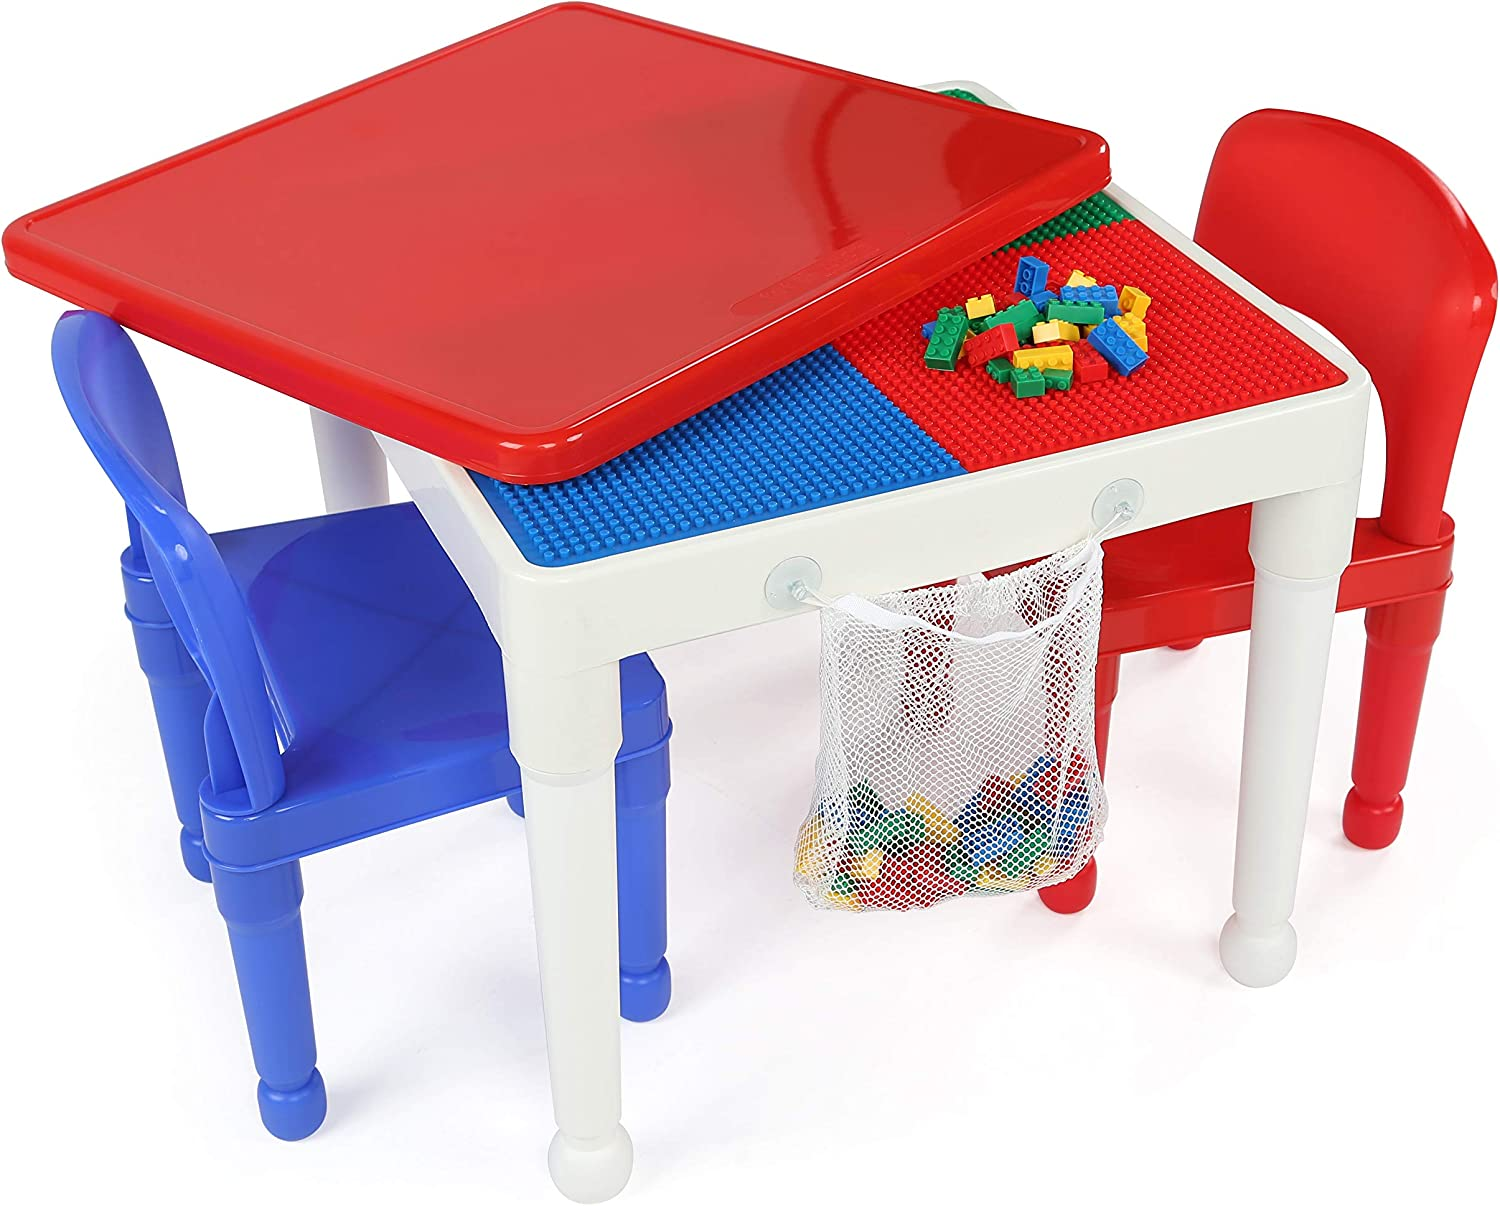 Tot Tutors Kids 2-in-1 Plastic Building Blocks-Compatible Activity Table and 2 Chairs Set, Square, Primary Colors